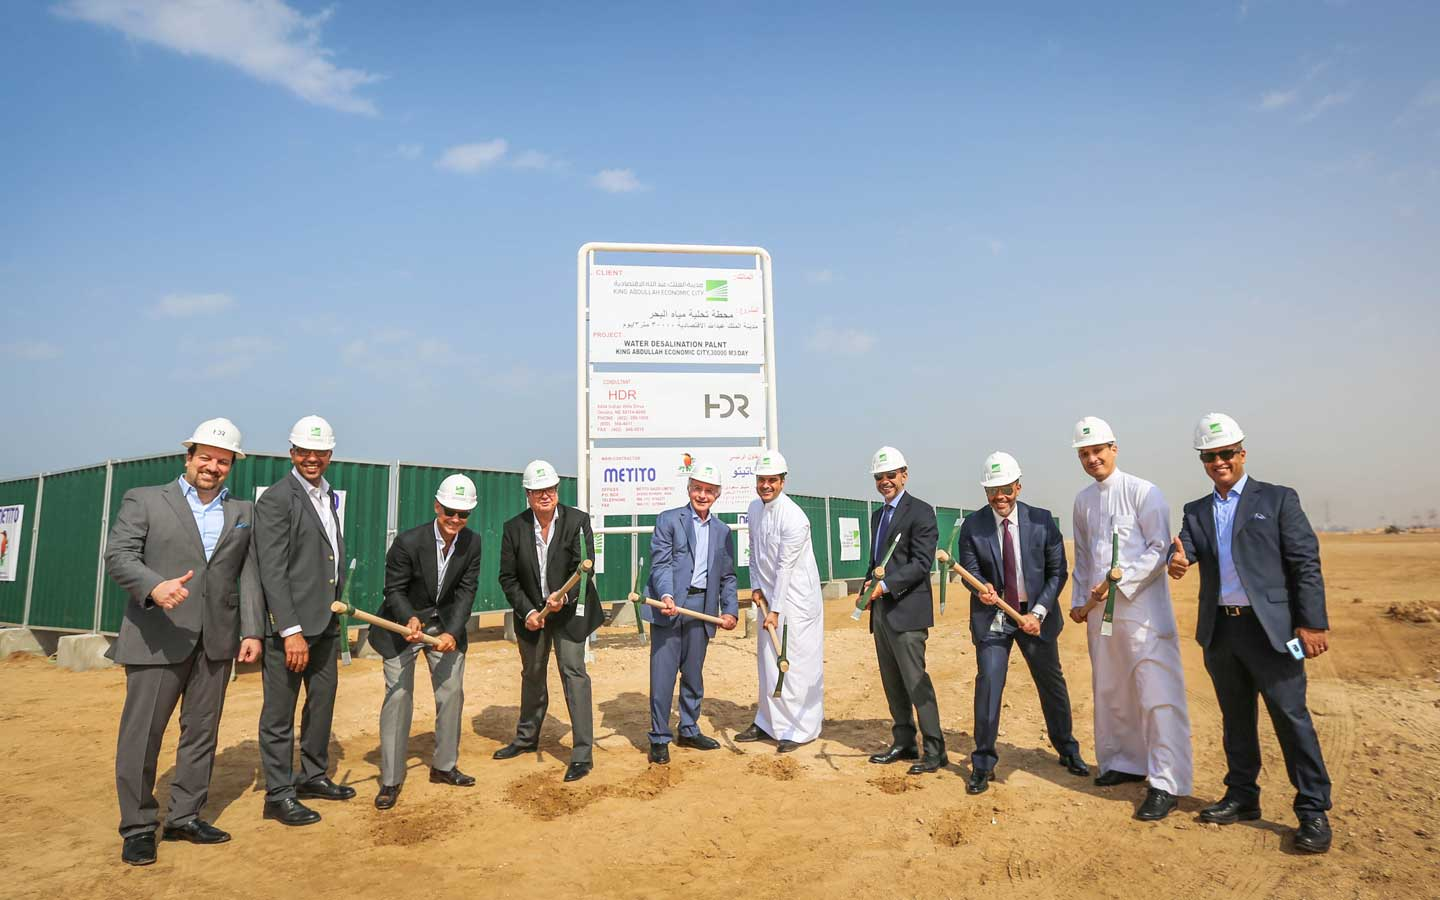 Mr. Ahmed Ibrahim Linjawy, KAEC Deputy Group Chief Executive Officer and Mr. Mutaz Ghandour, Metito Chairman and CEO, laying the foundation stone for the seawater desalination plant powered by solar energy in King Abdullah Economic City, joined by representatives from both parties and members of the project management team